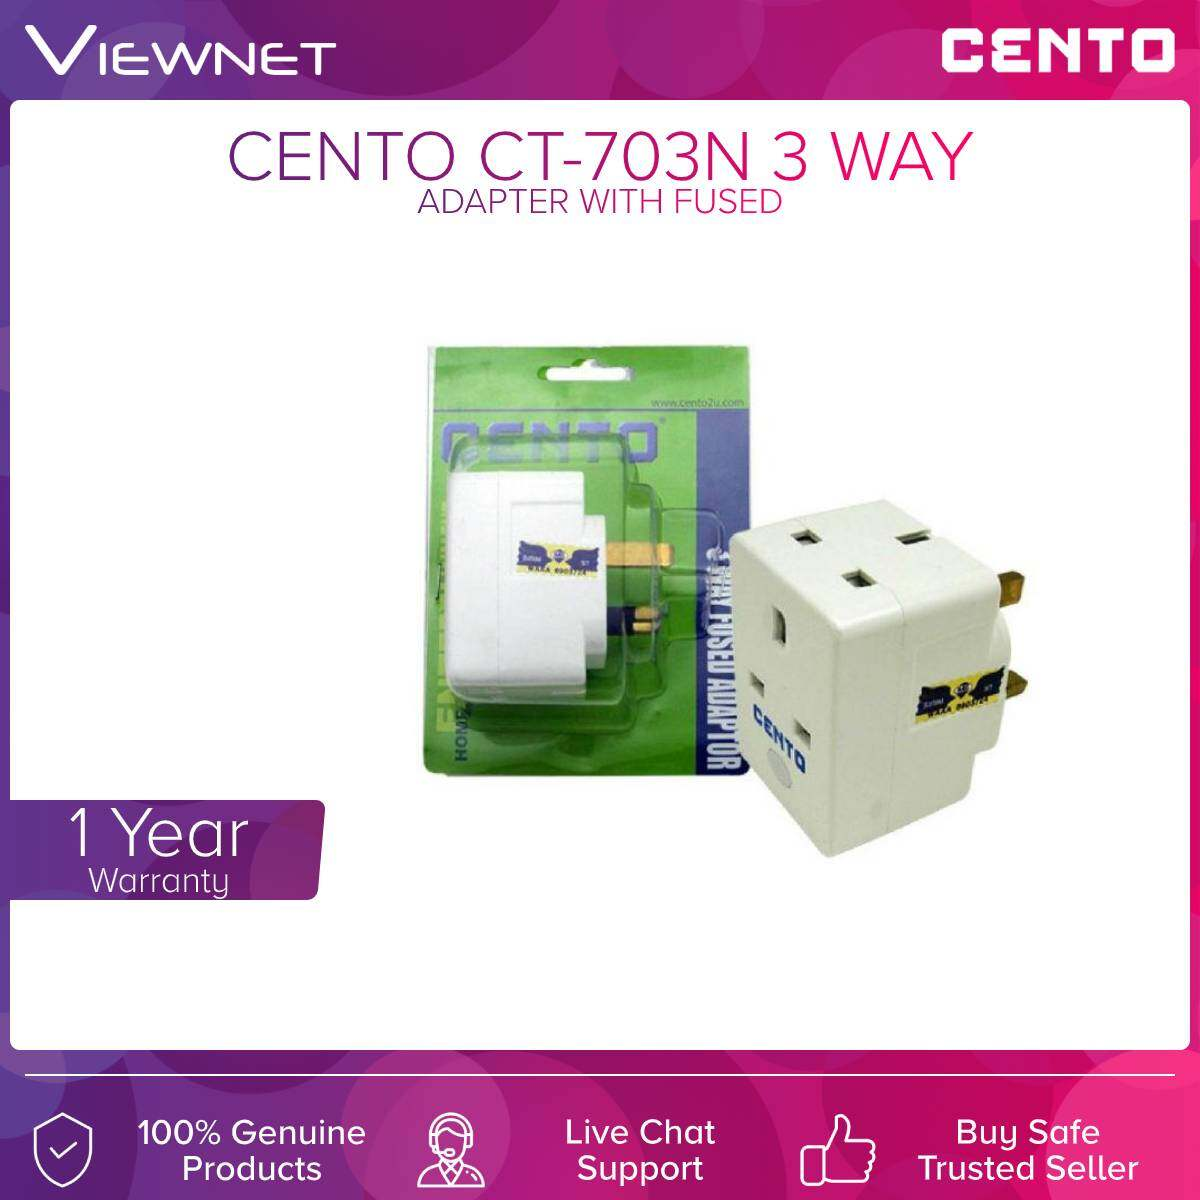 Cento CT-703N 3 Way Adapter With Fused